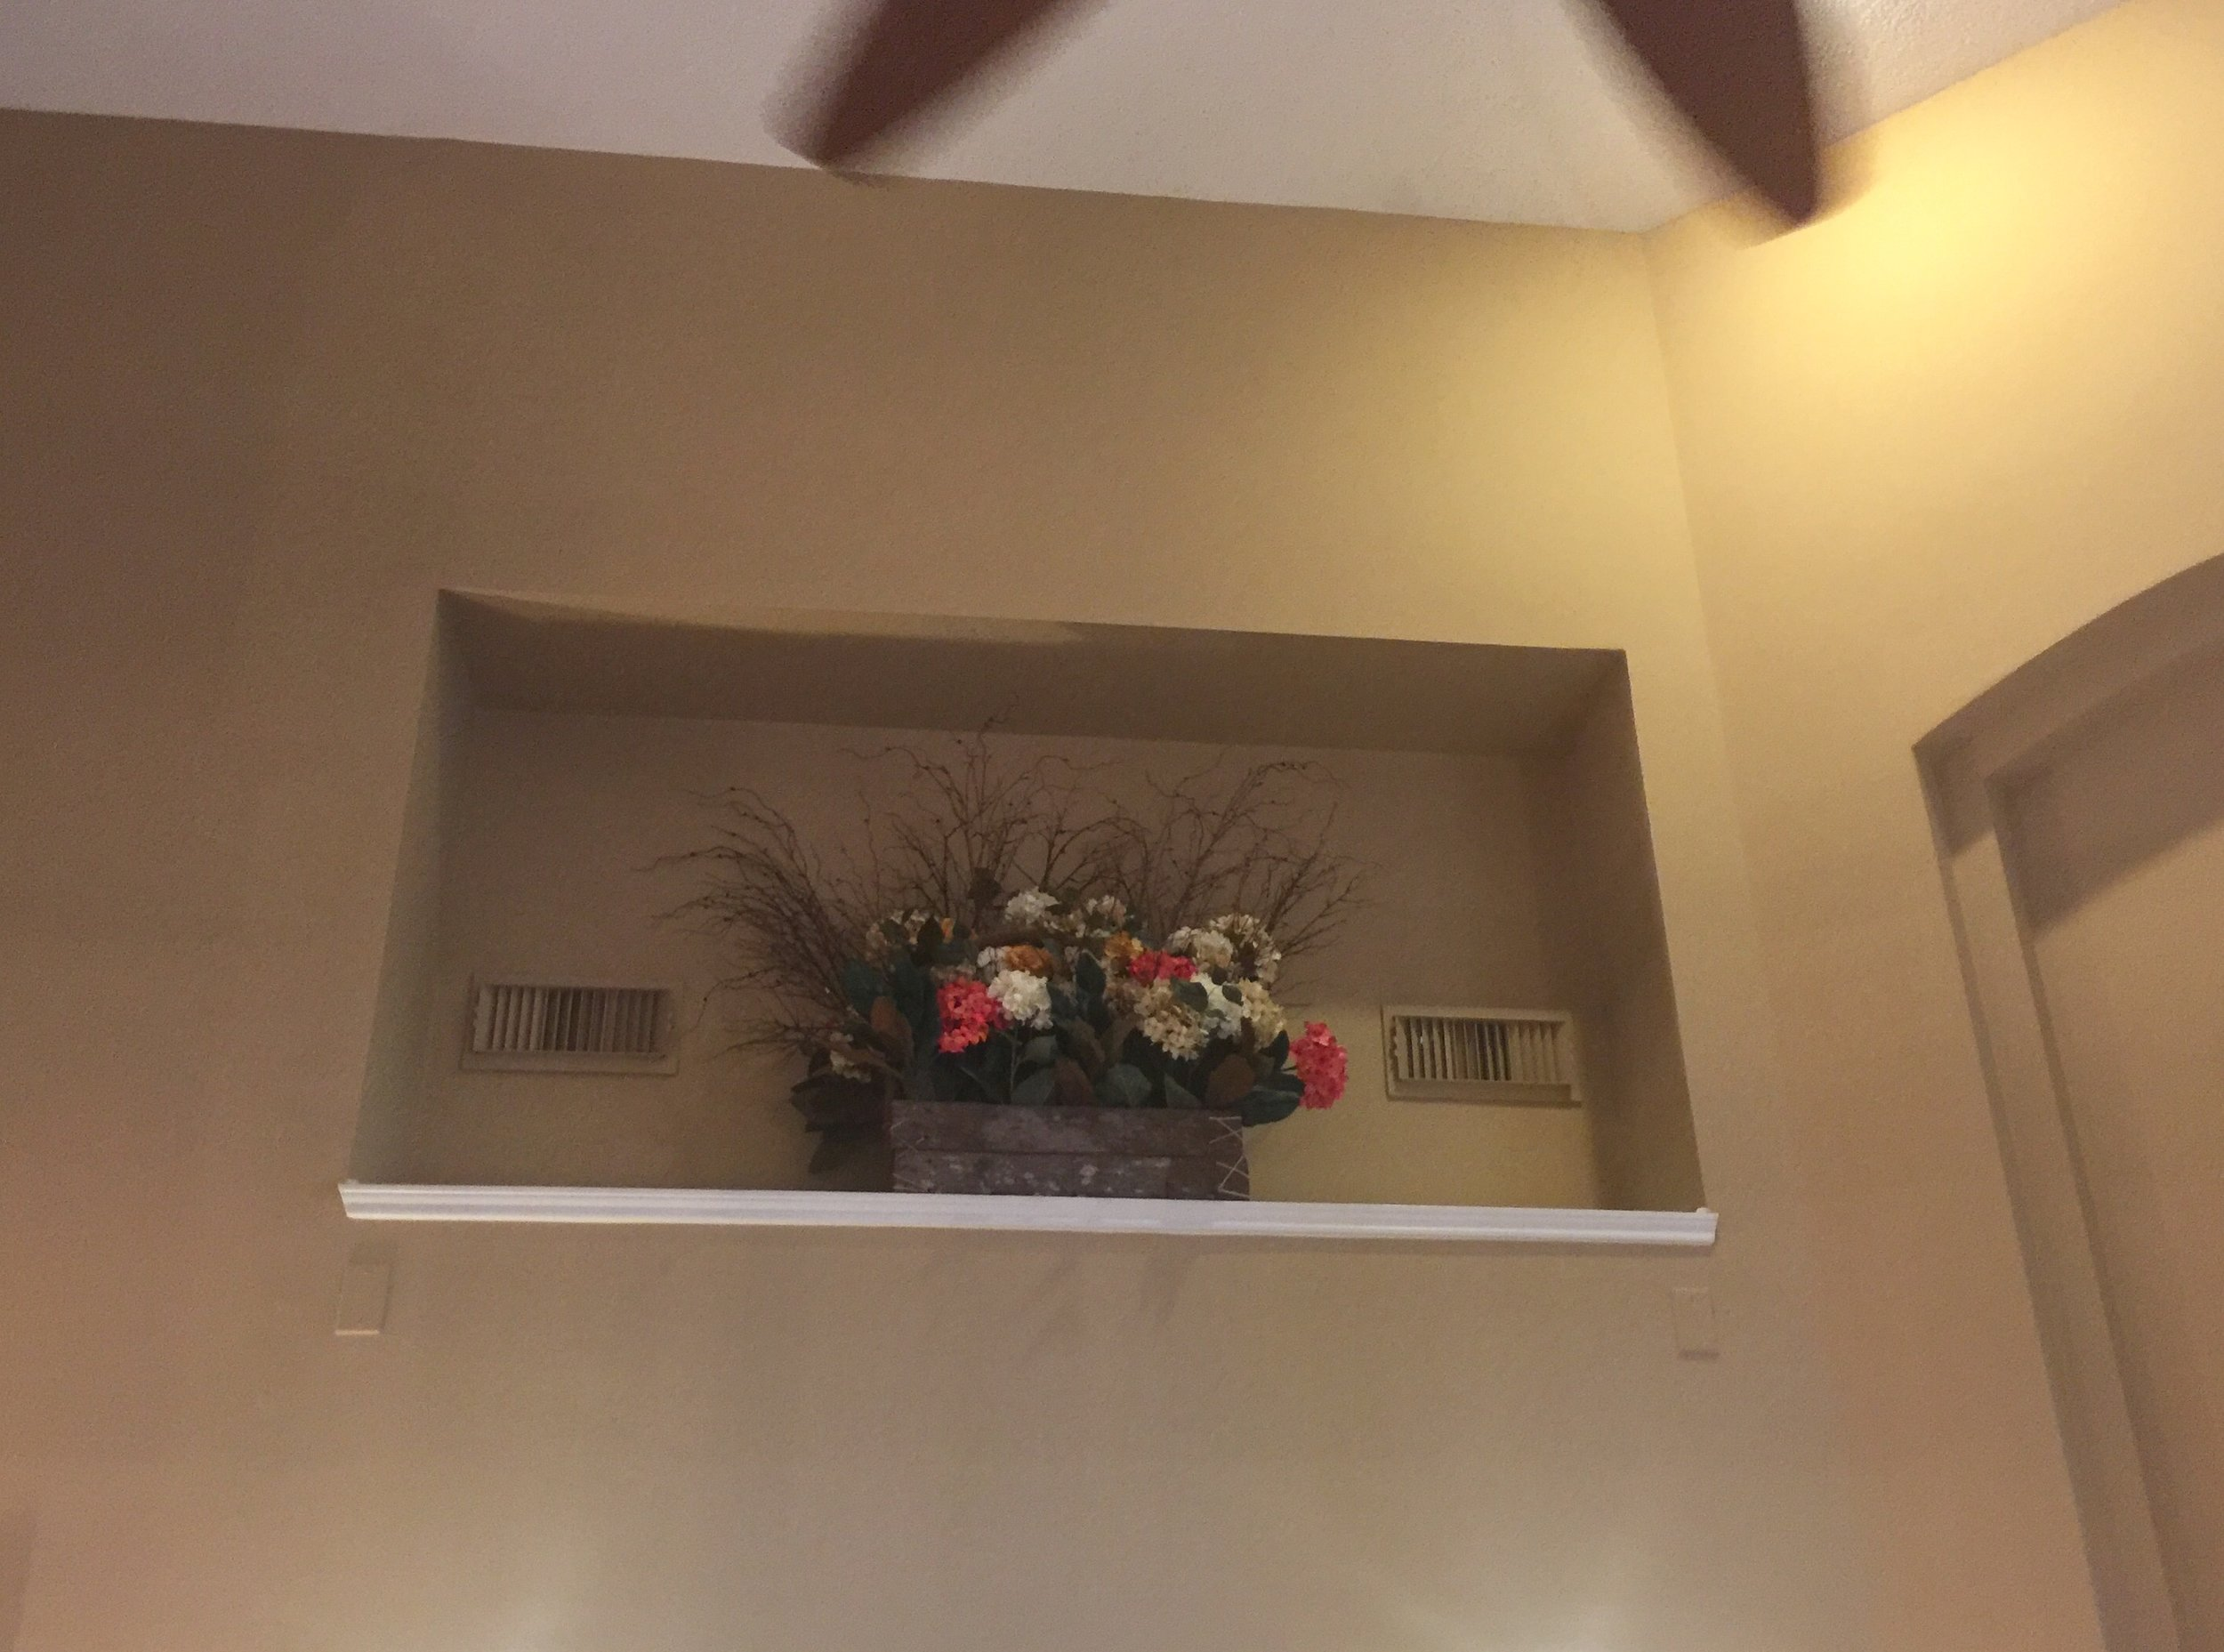 Ah yes, the dusty flower arrangement. Perfect for a niche that is 16' up off the ground. And those A/C vents look really nice featured in the niche, right? :-( #wallniche